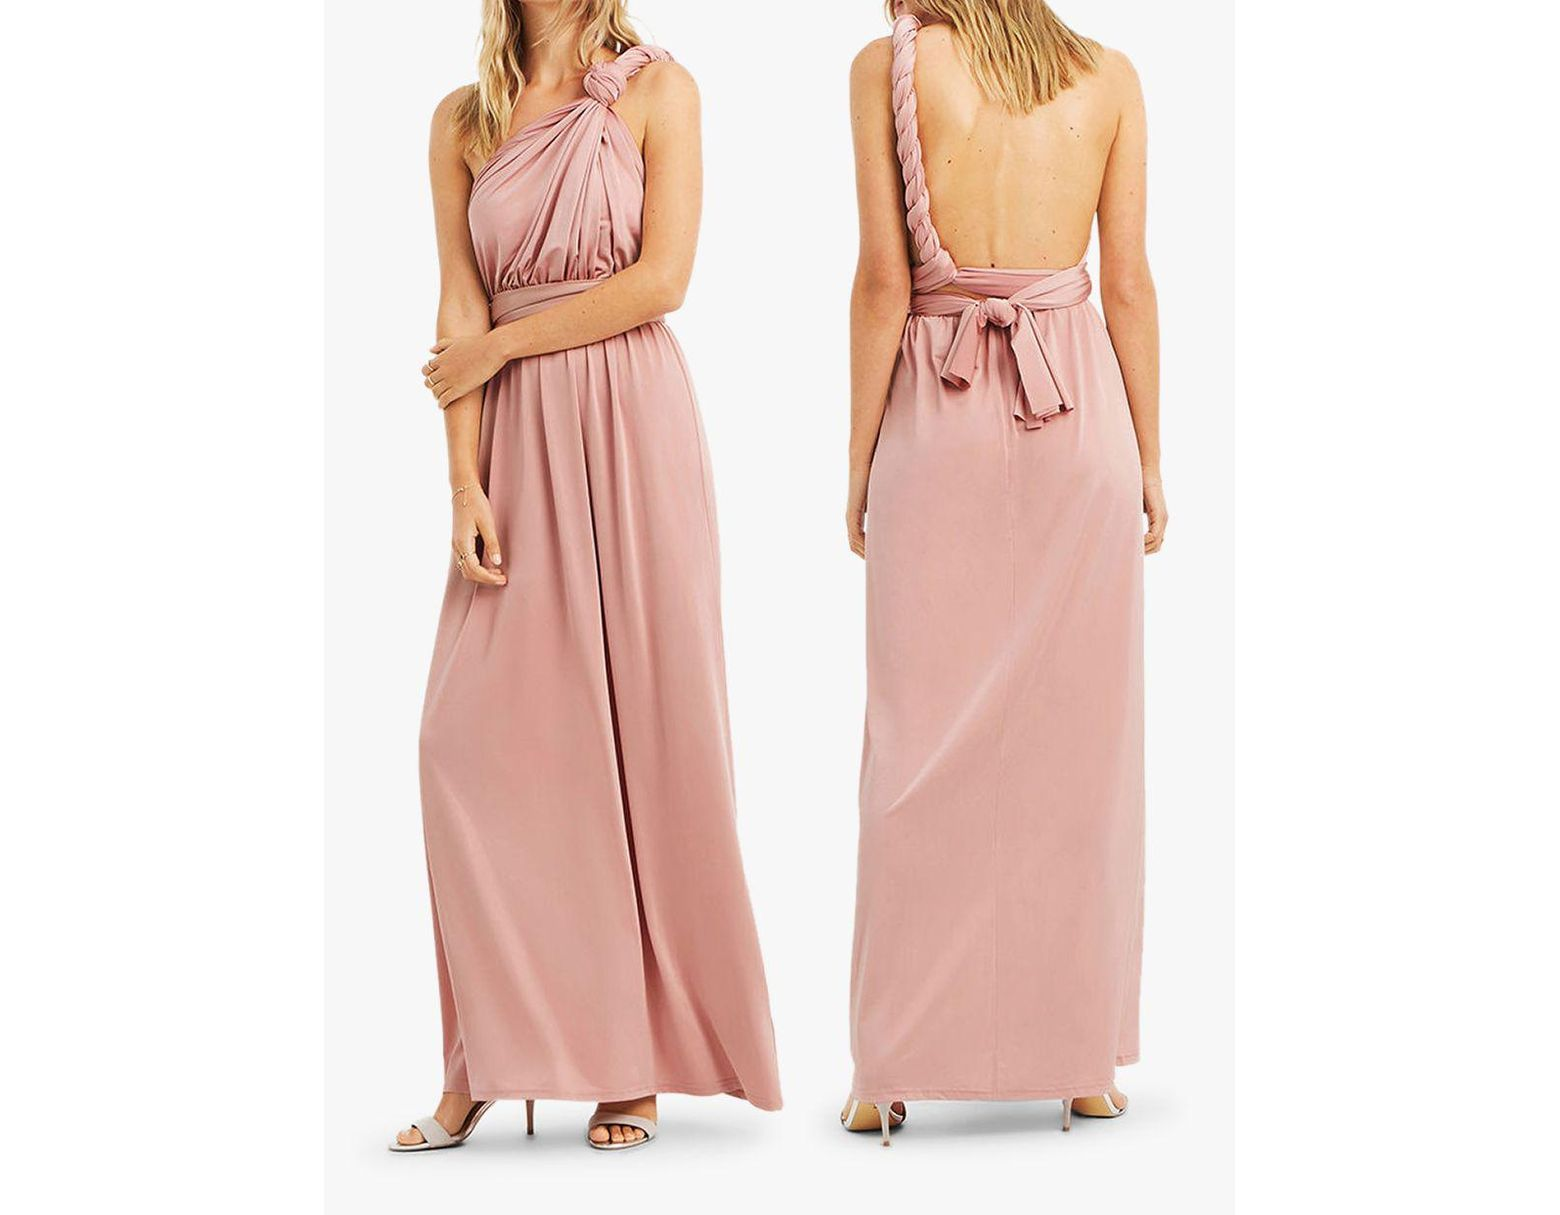 f3e4eacf1271 Oasis Annie Multiway Maxi Dress in Pink - Save 72% - Lyst